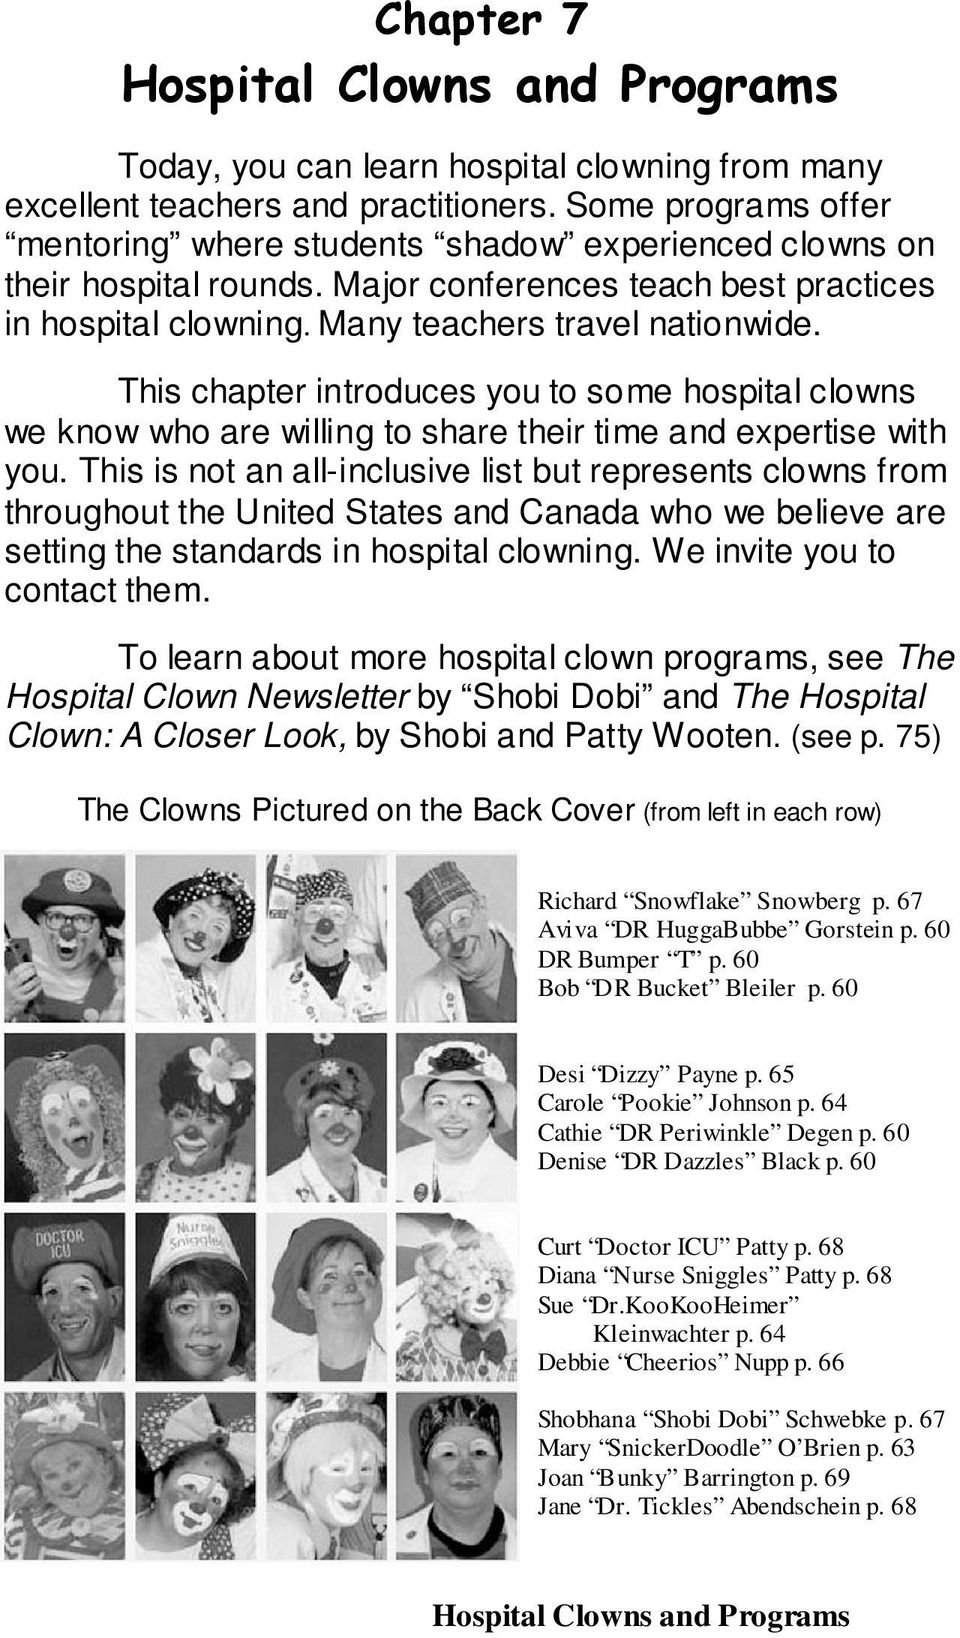 This chapter introduces you to some hospital clowns we know who are willing to share their time and expertise with you.